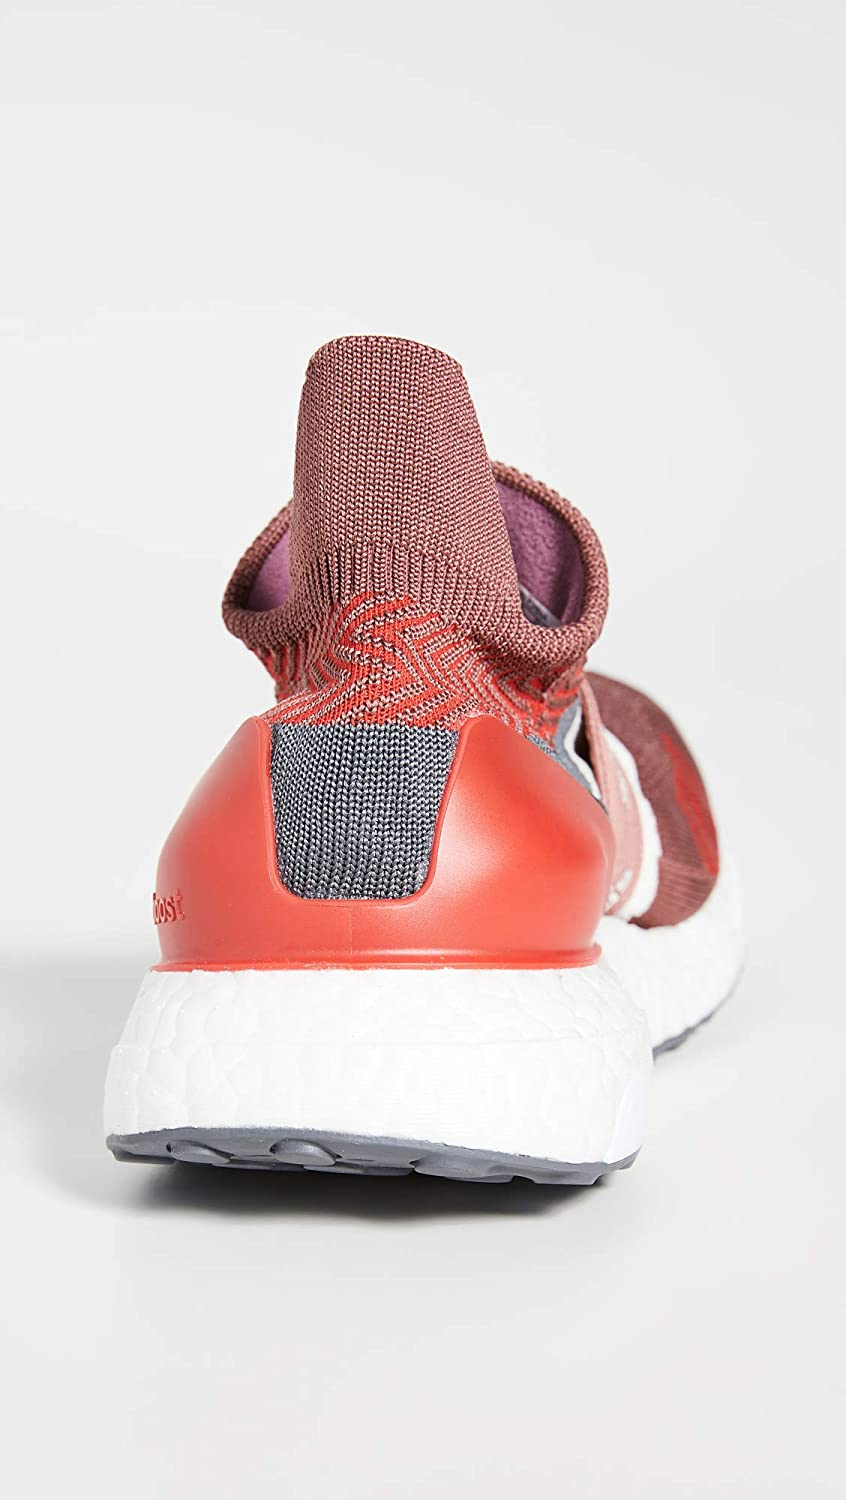 adidas by Stella McCartney Ultraboost X Baskets 3D pour Femme Clay Red/Intense Pink/Red